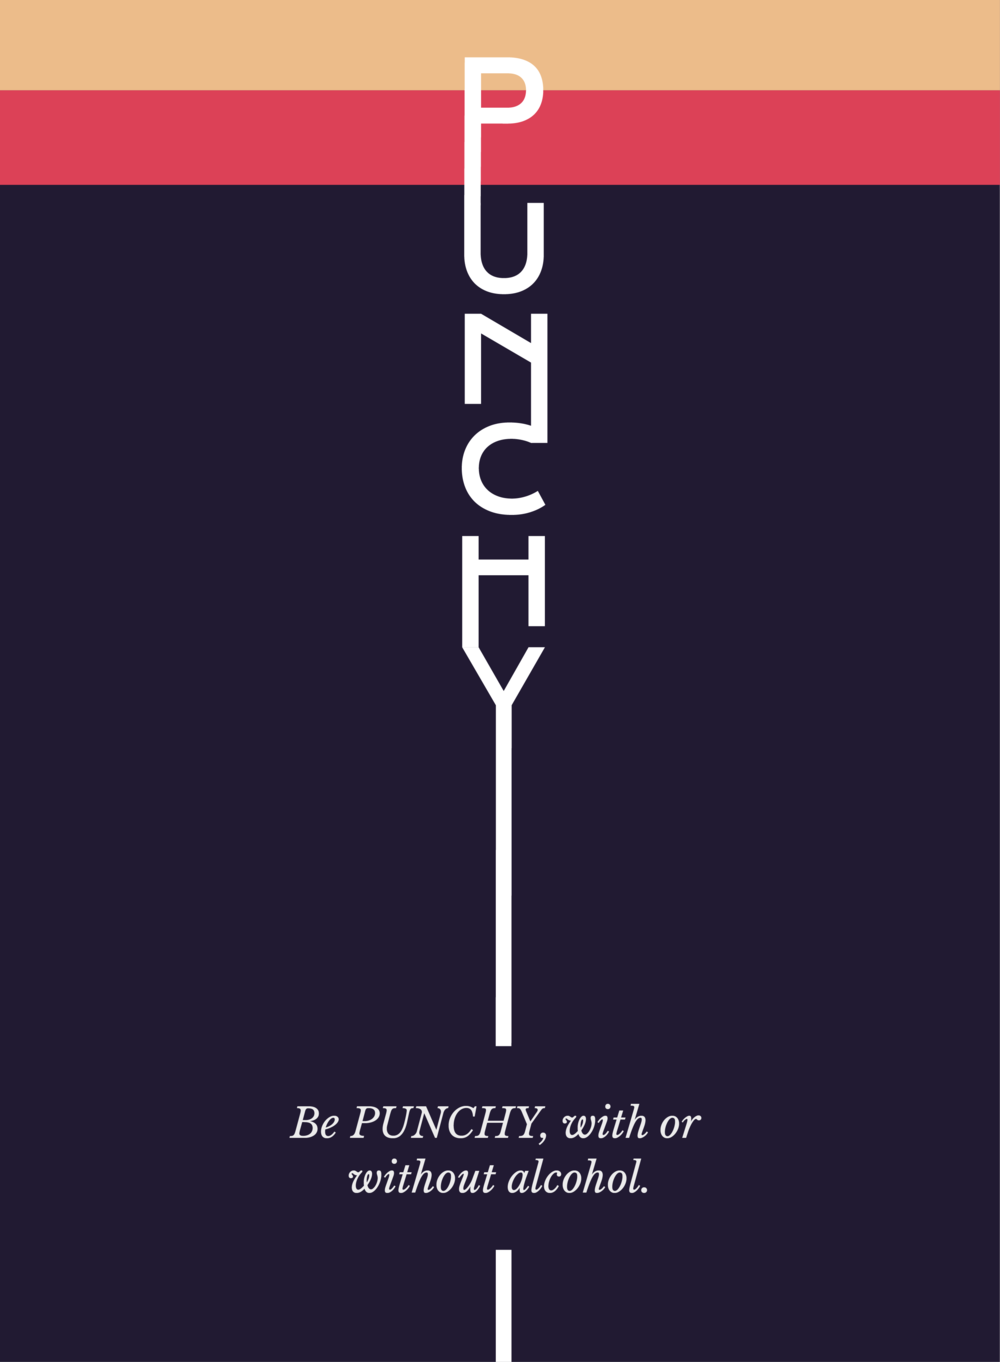 Punchy_02.png